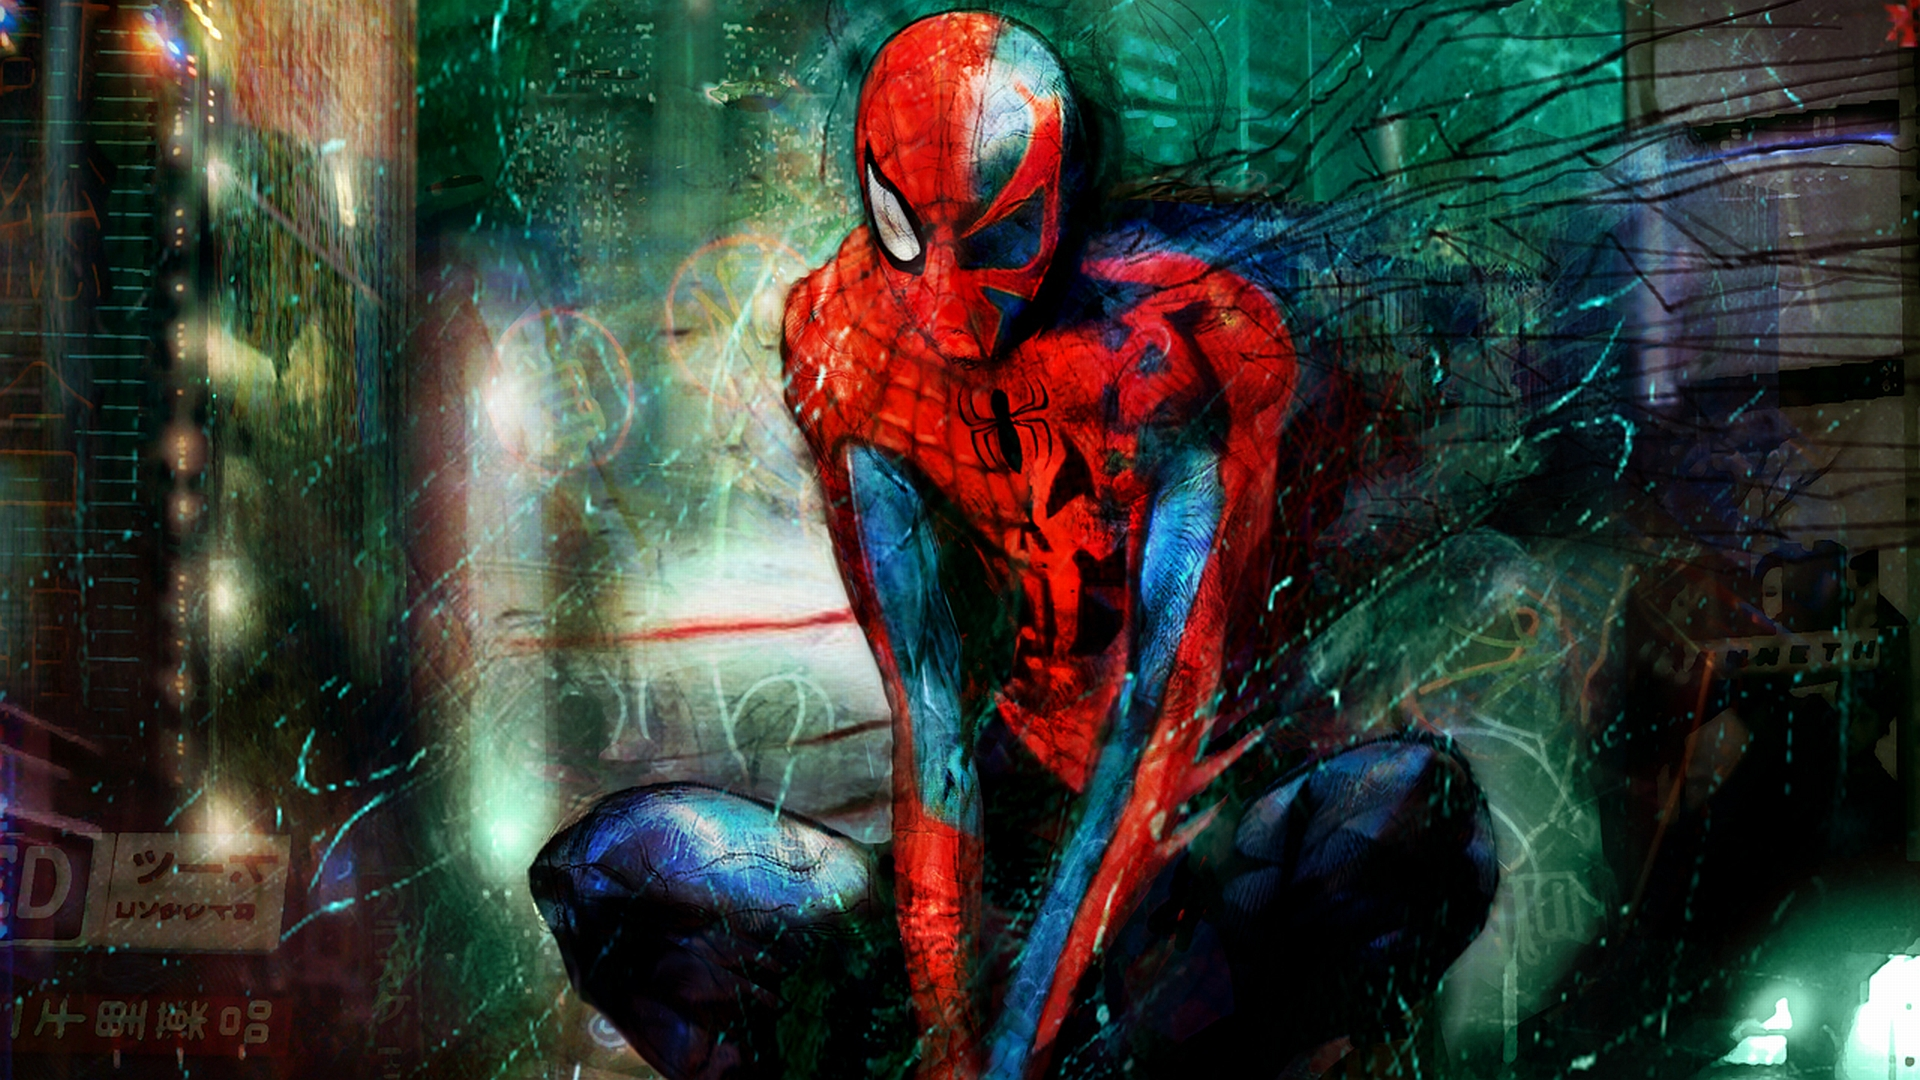 spiderman wallappers for desktop (36)